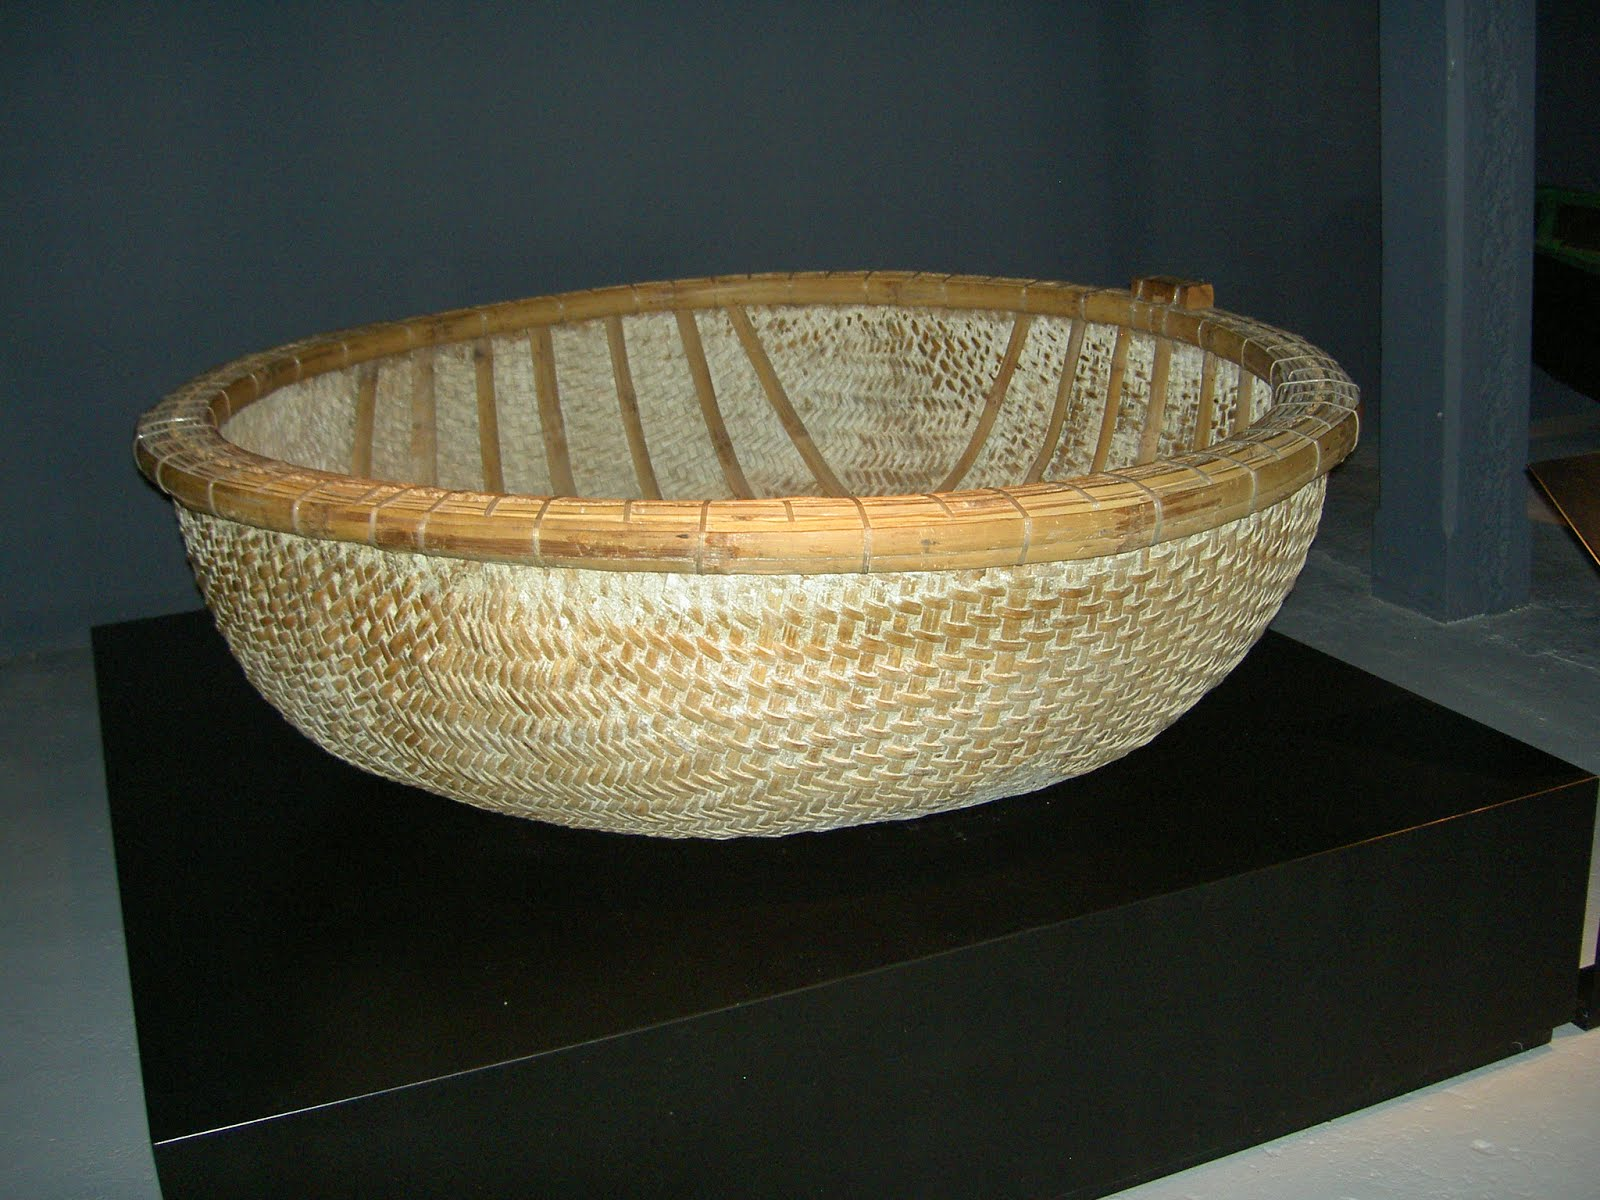 File:Basket boat.JPG